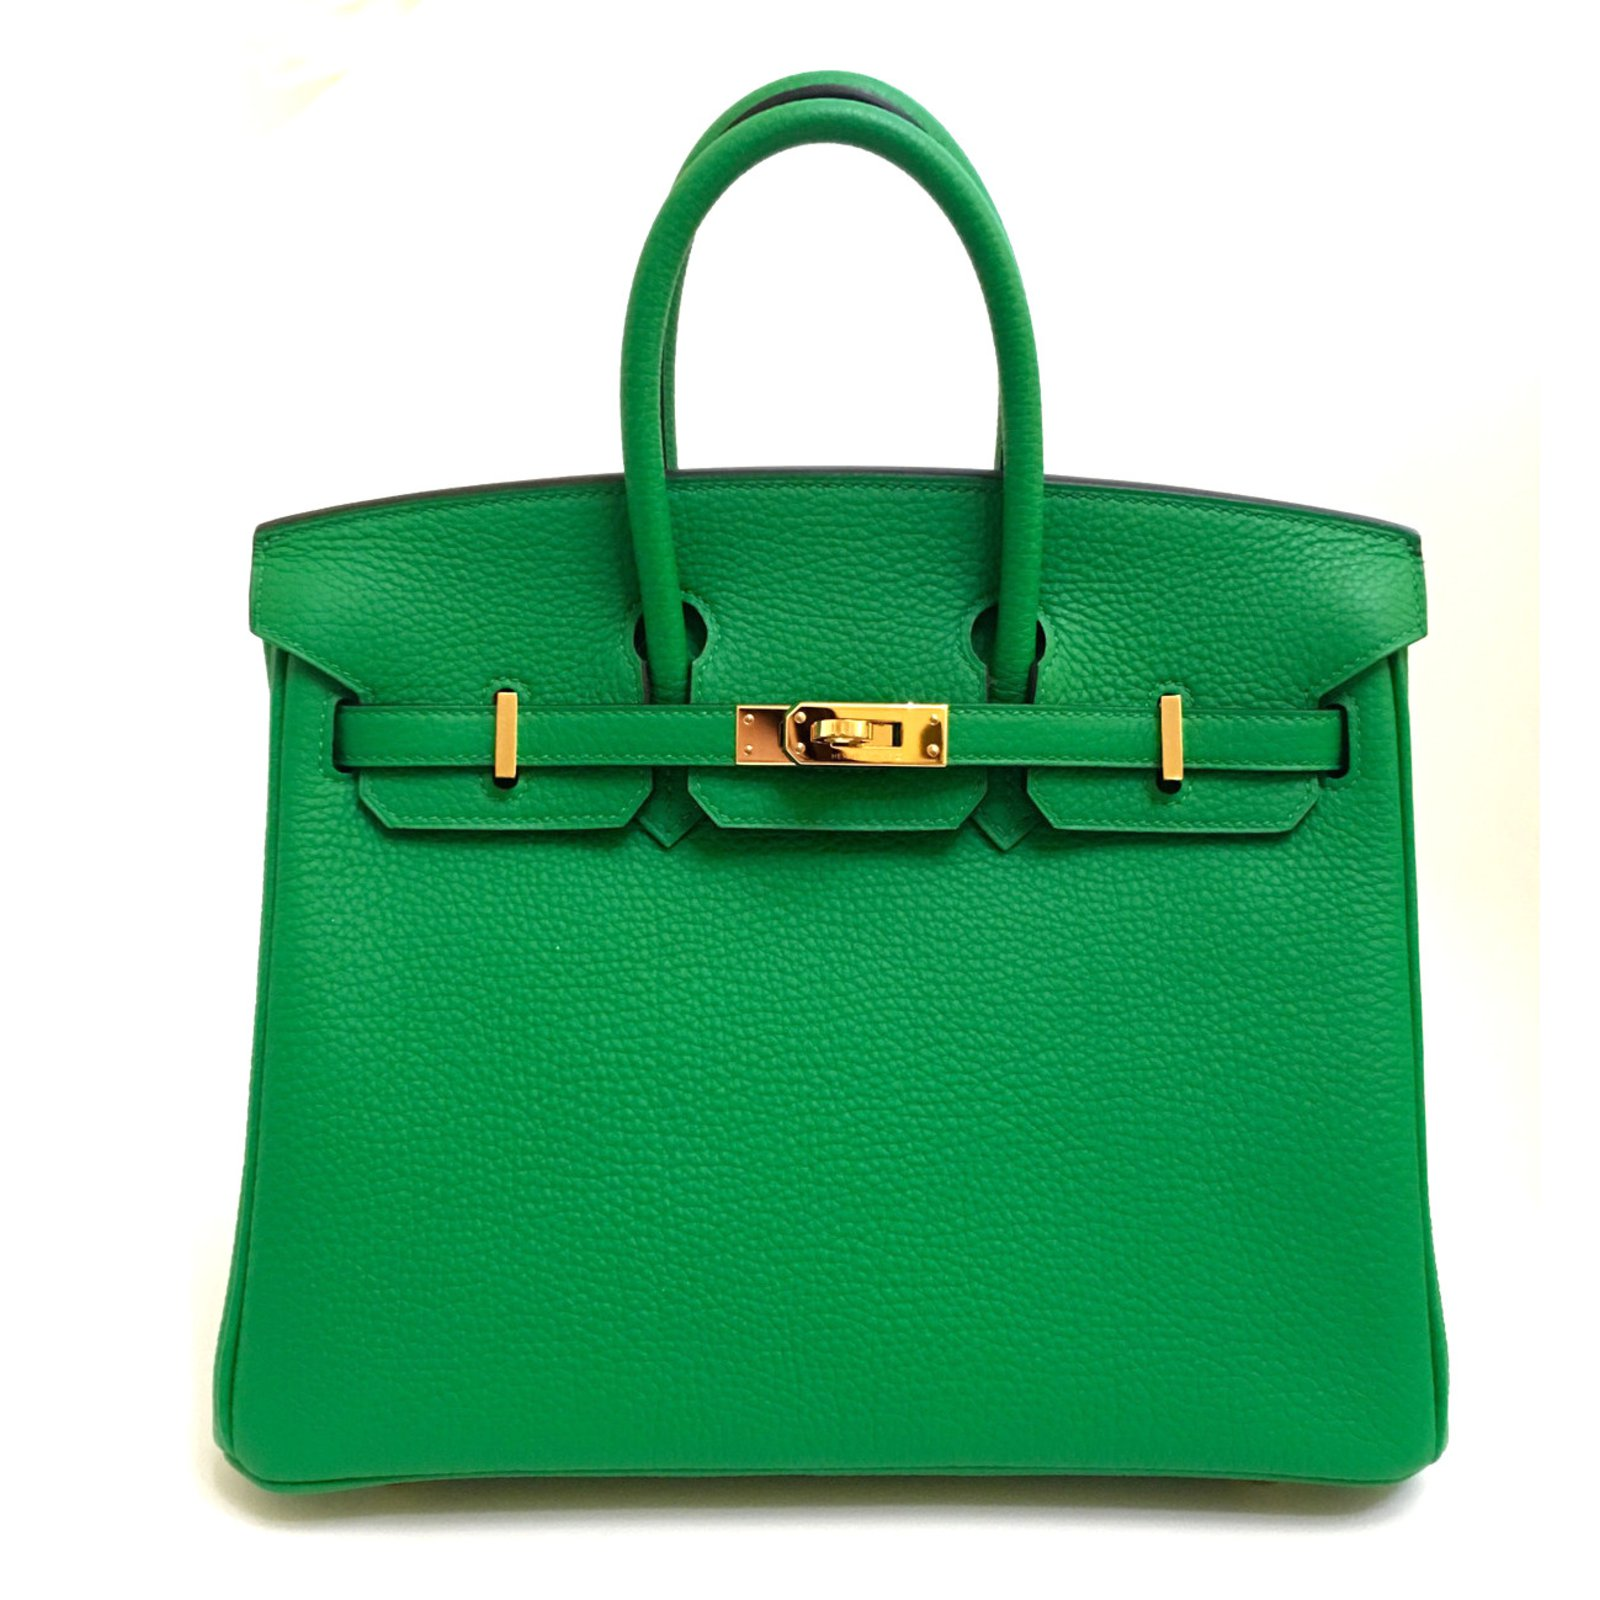 Beautiful Hermes Bag For Women With Unique Photos In South Africa | Sobatapk.com